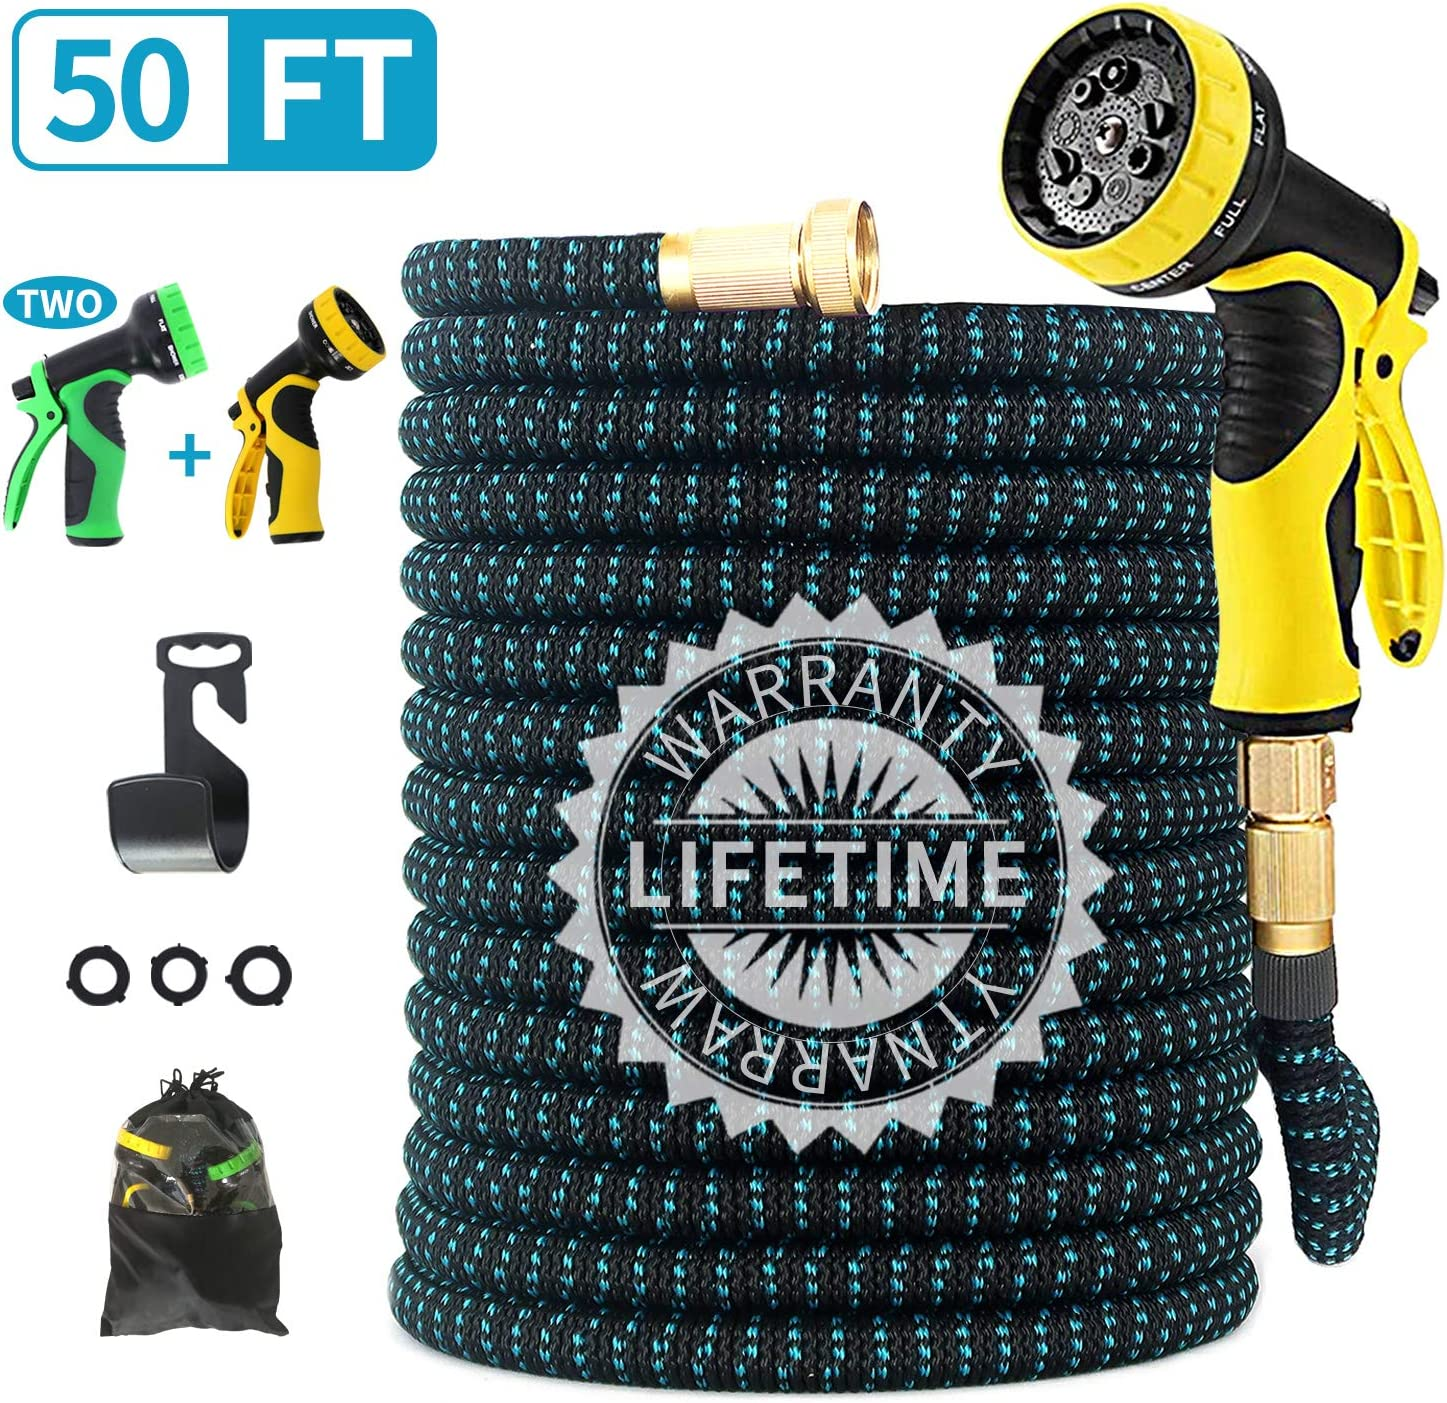 """FIENVO 50 ft Upgraded Expandable Durable No-Kink Flexible Garden Water Hose Set with Extra Strength Fabric Triple Layer Latex Core,3/4"""" Solid Brass Connectors 9 Function Spray Hose Nozzle"""